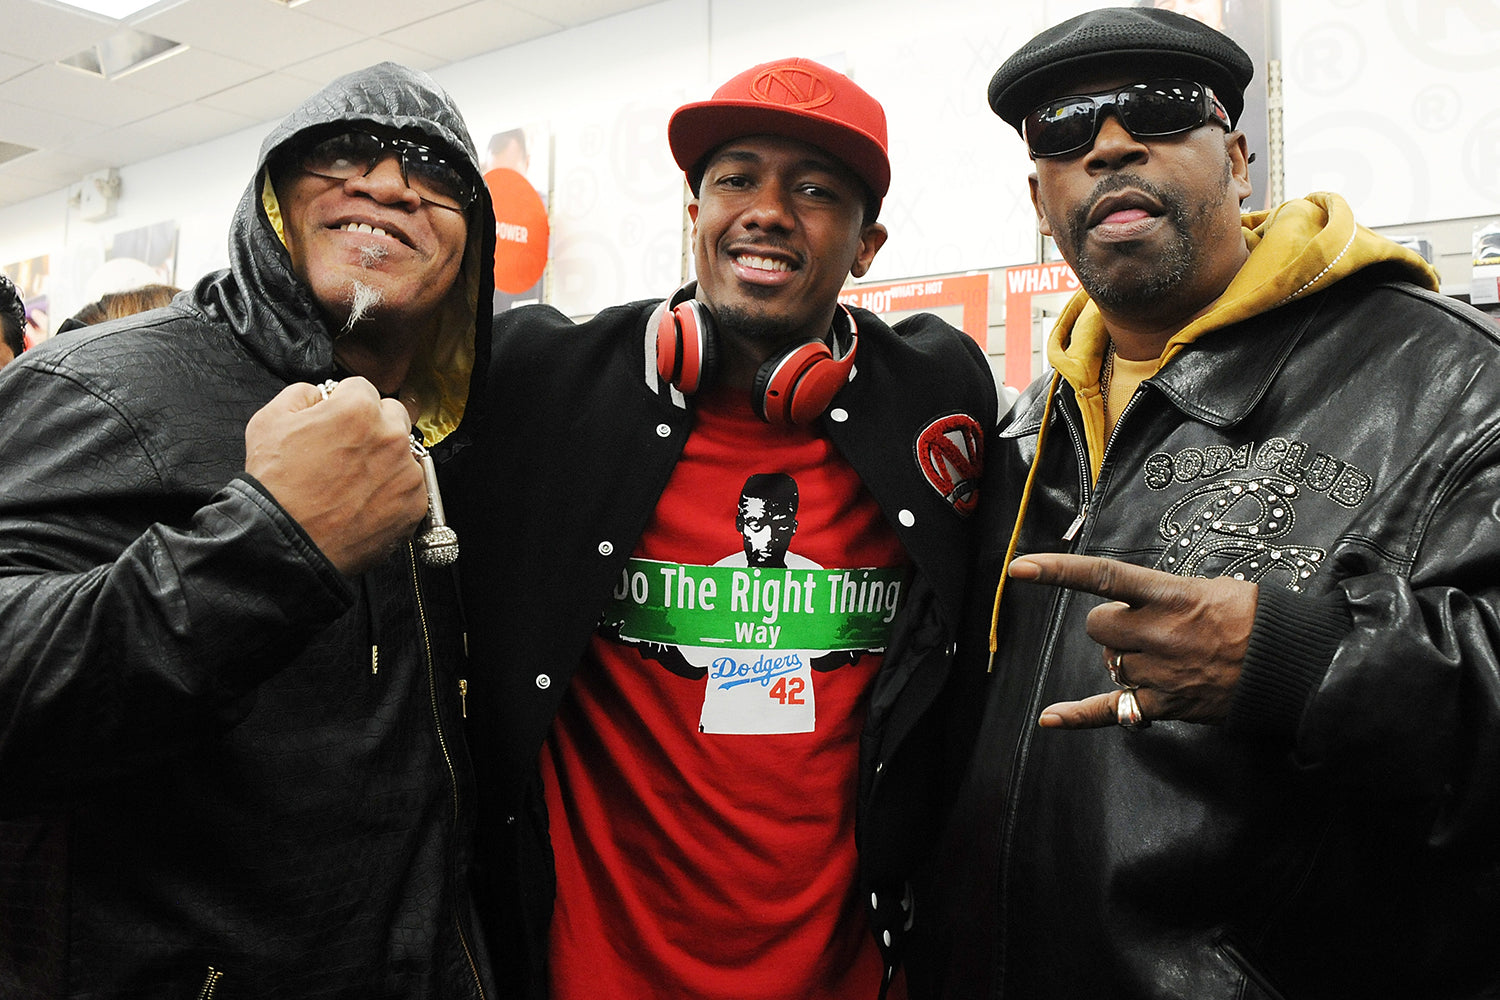 Nick Cannon (C) poses with rappers Melle Mel (L) and Grandmaster Caz during his launch of Ncredible product line at Radioshack on February 23, 2016 in New York City.